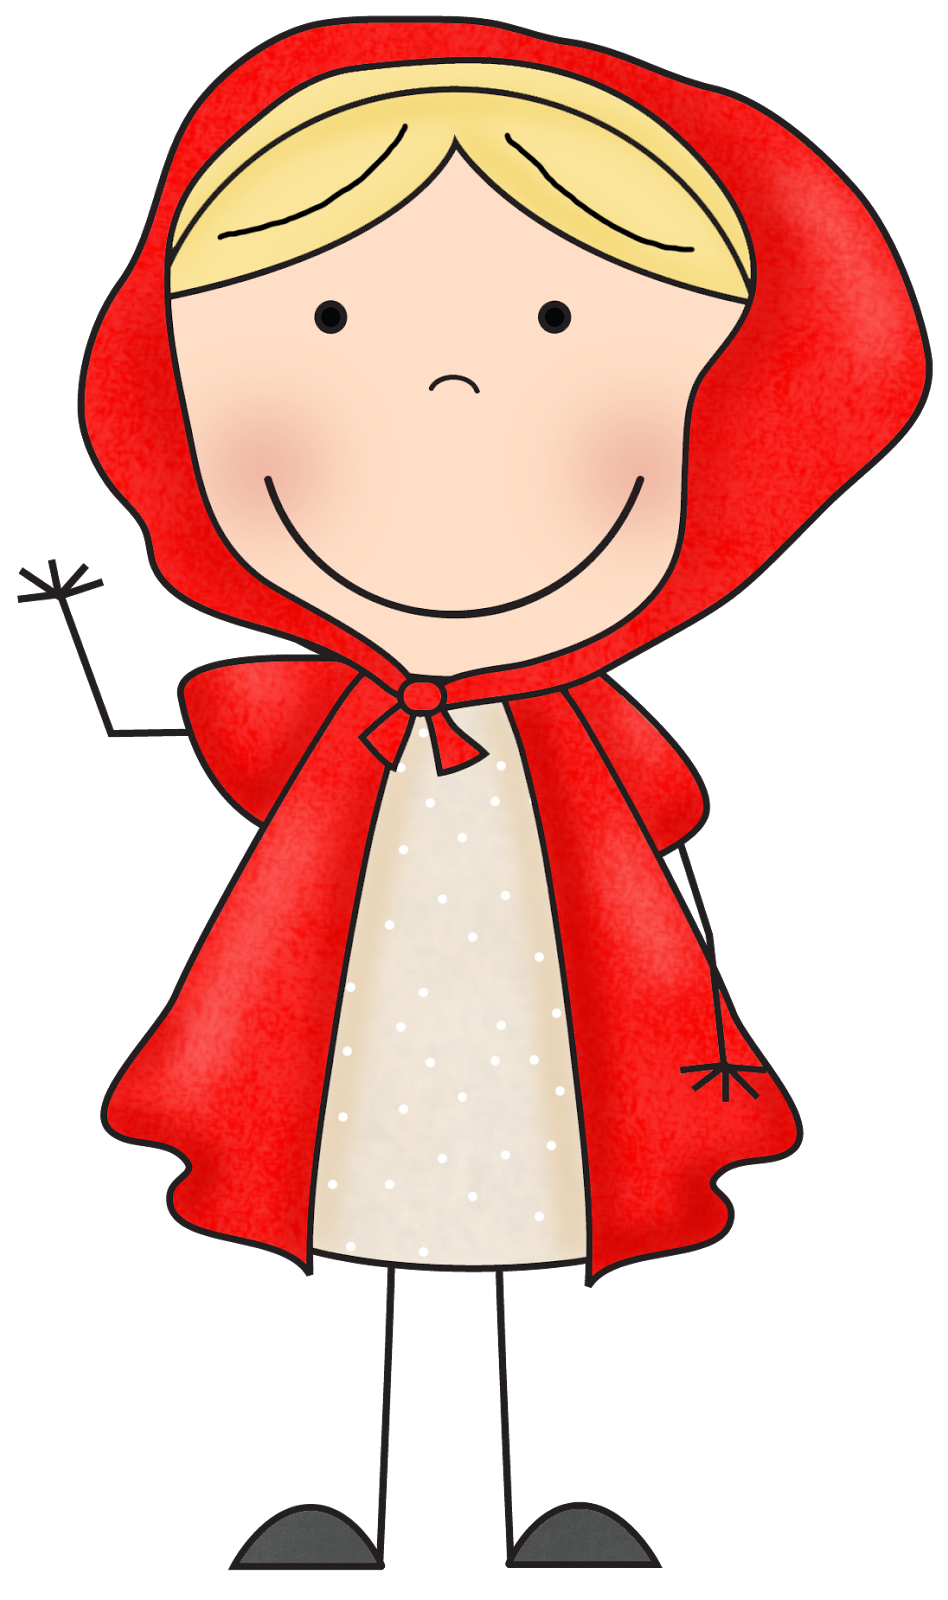 Pin by elena on. Librarian clipart scrappin doodles